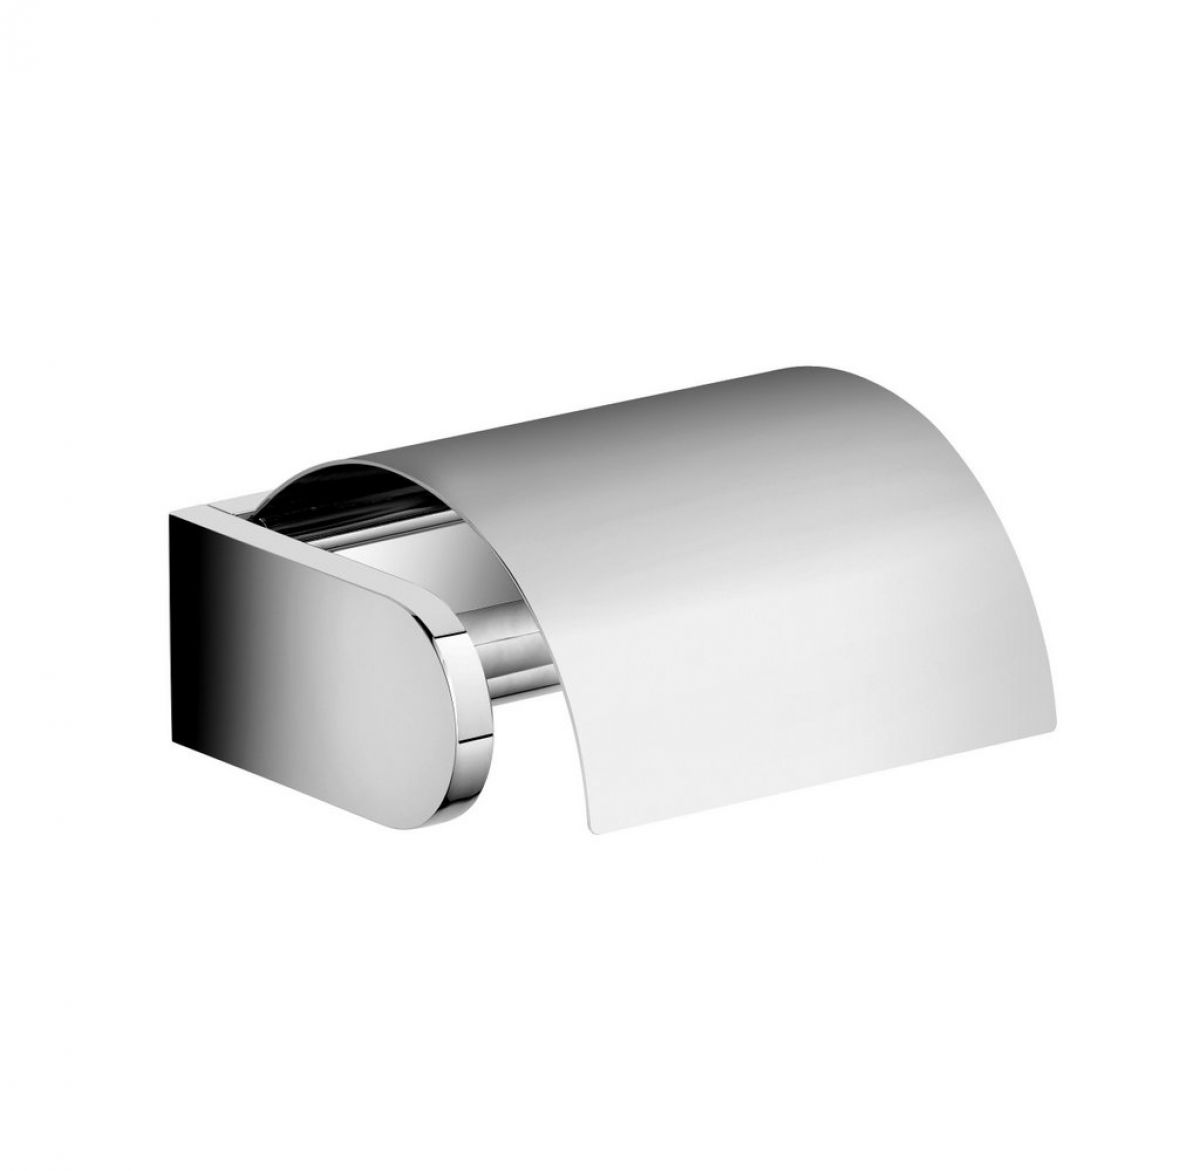 Keuco Edition 300 Toilet Paper Holder